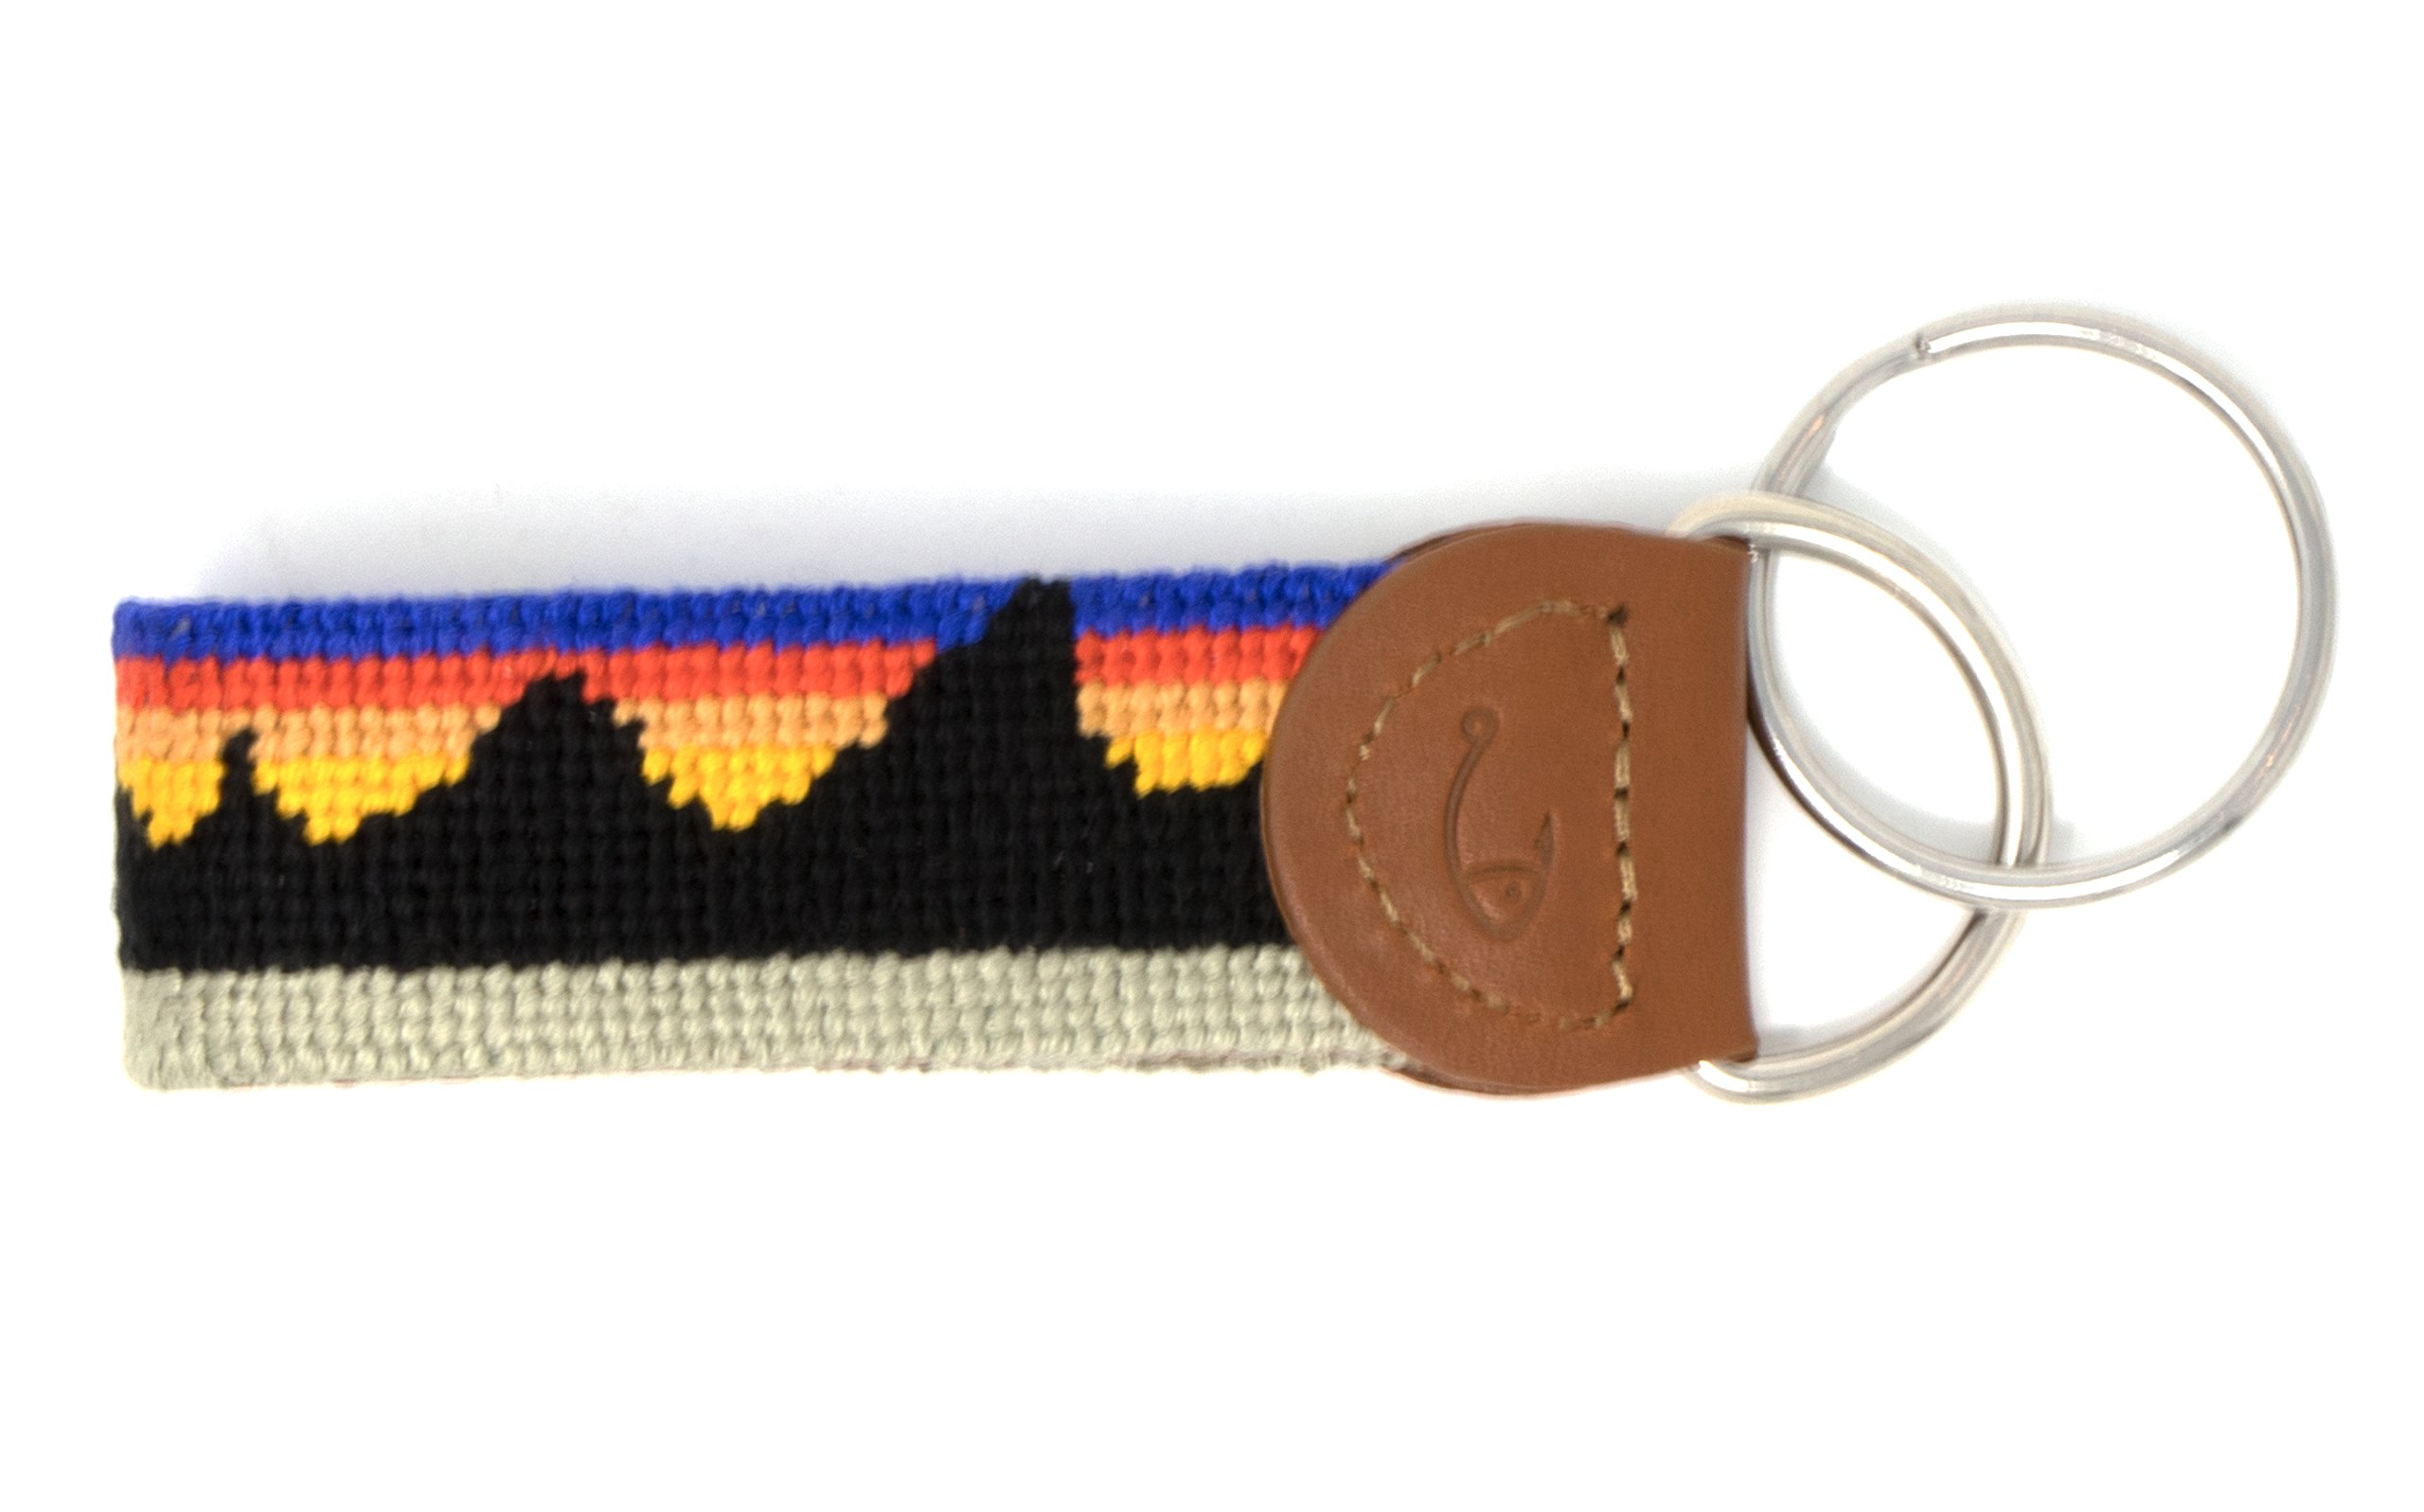 Needlepoint Key Fob & Key Ring by Huck Venture (Mountain Range)